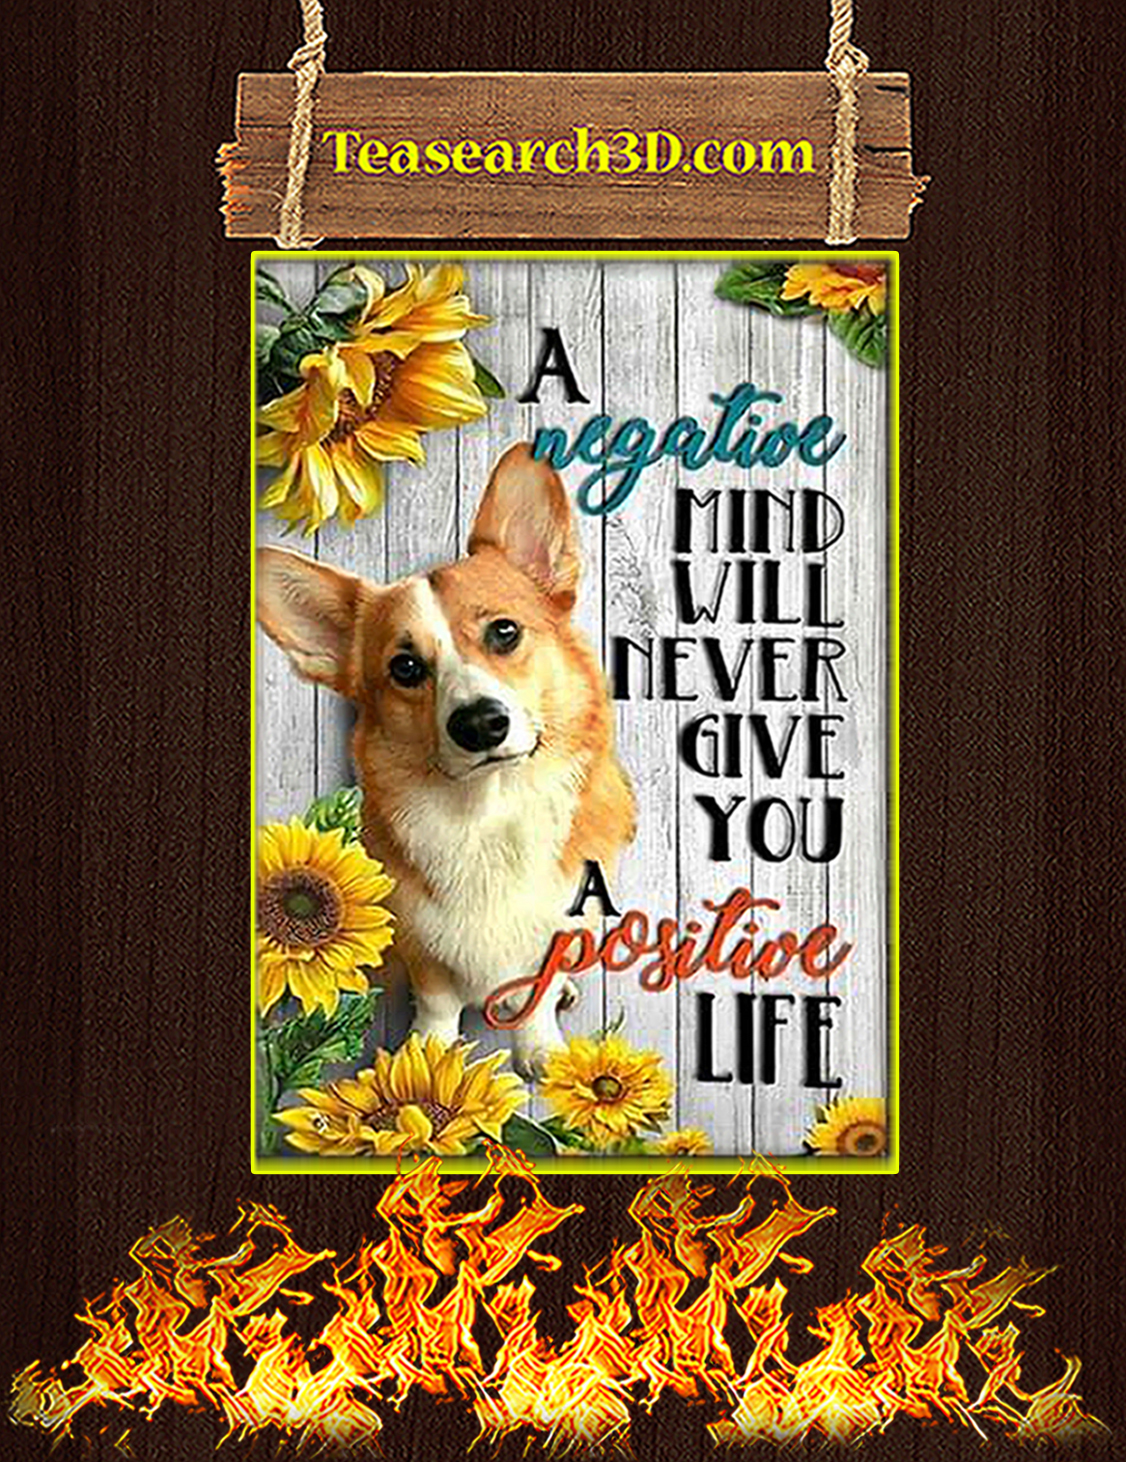 Corgi A negative mind will never give you a positive life poster A3